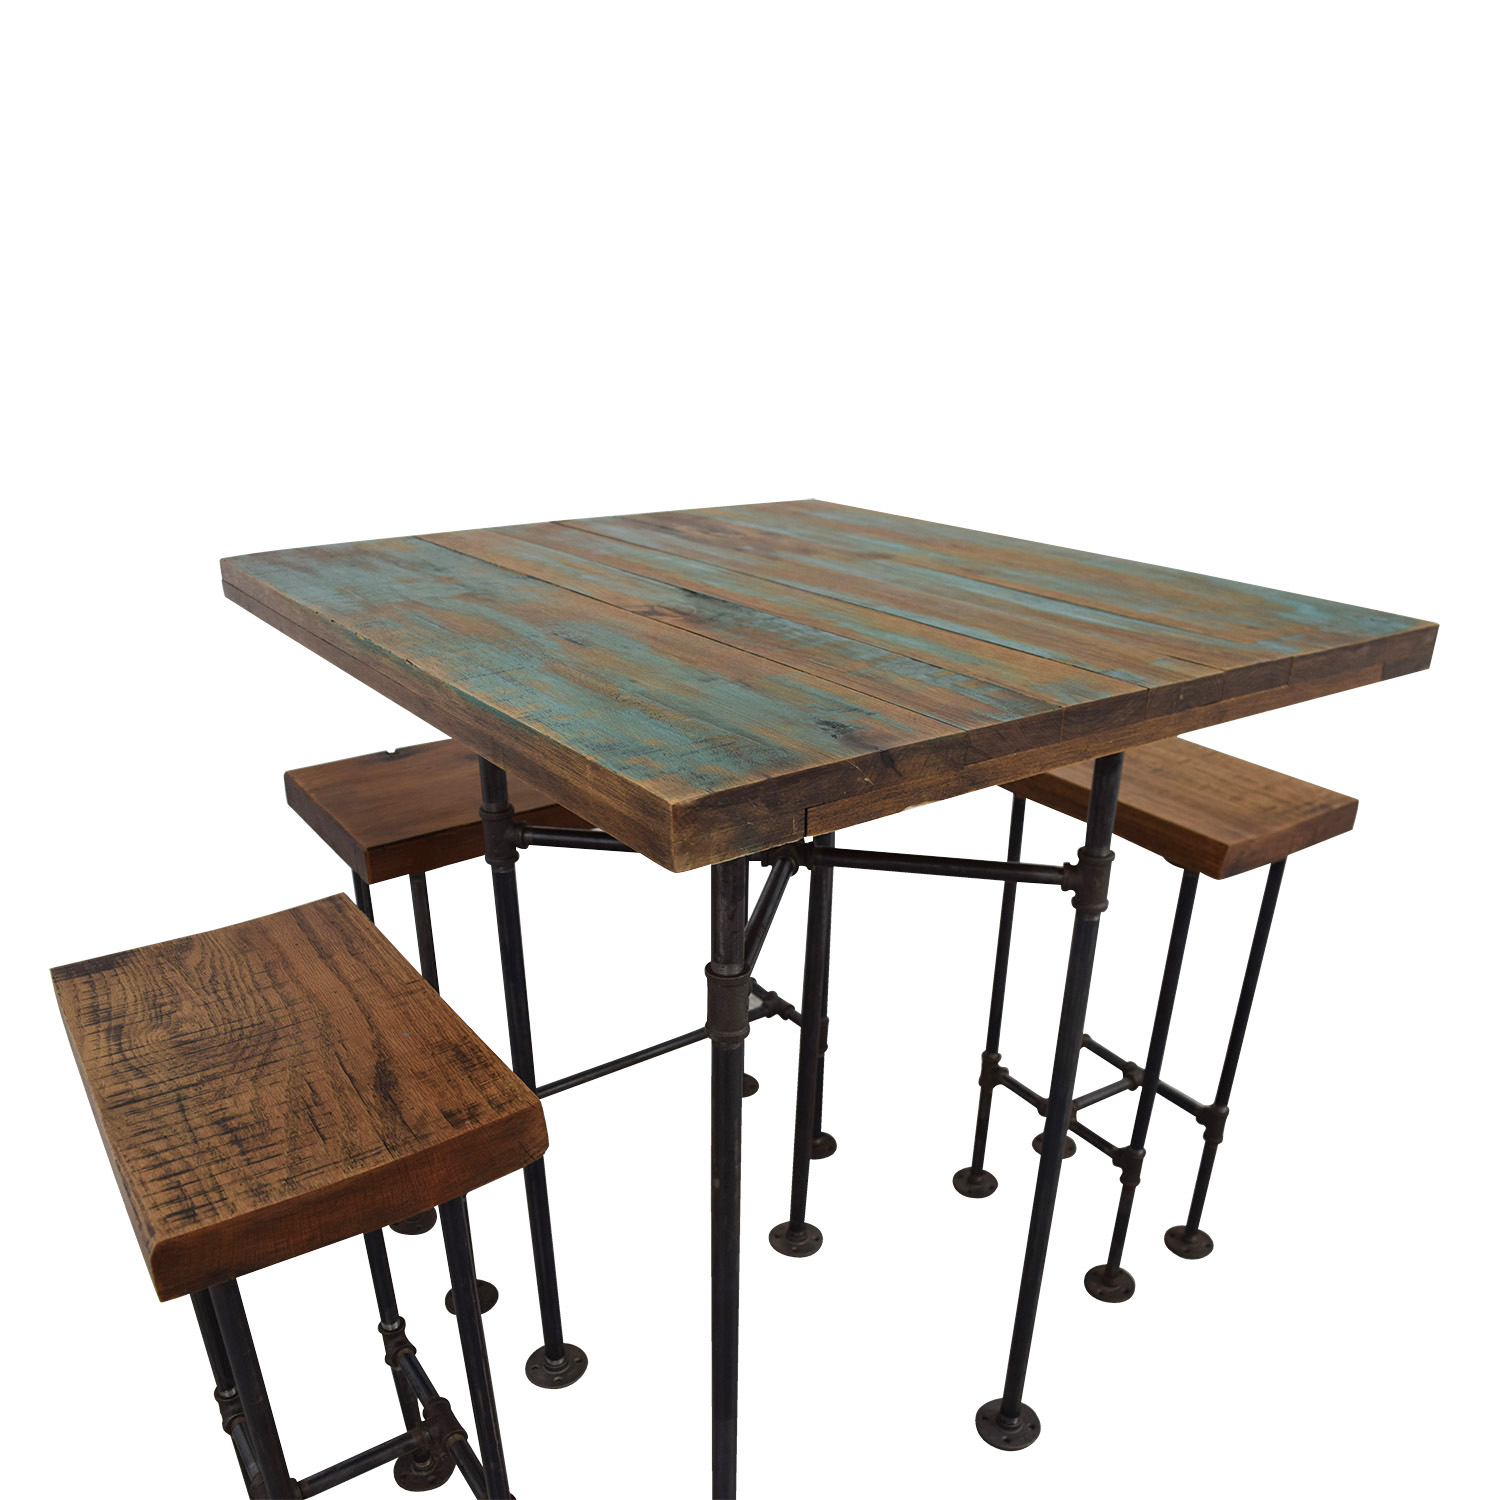 A Little of India A Little of India Industrial Reclaimed Wood Counter Table and Stools nj